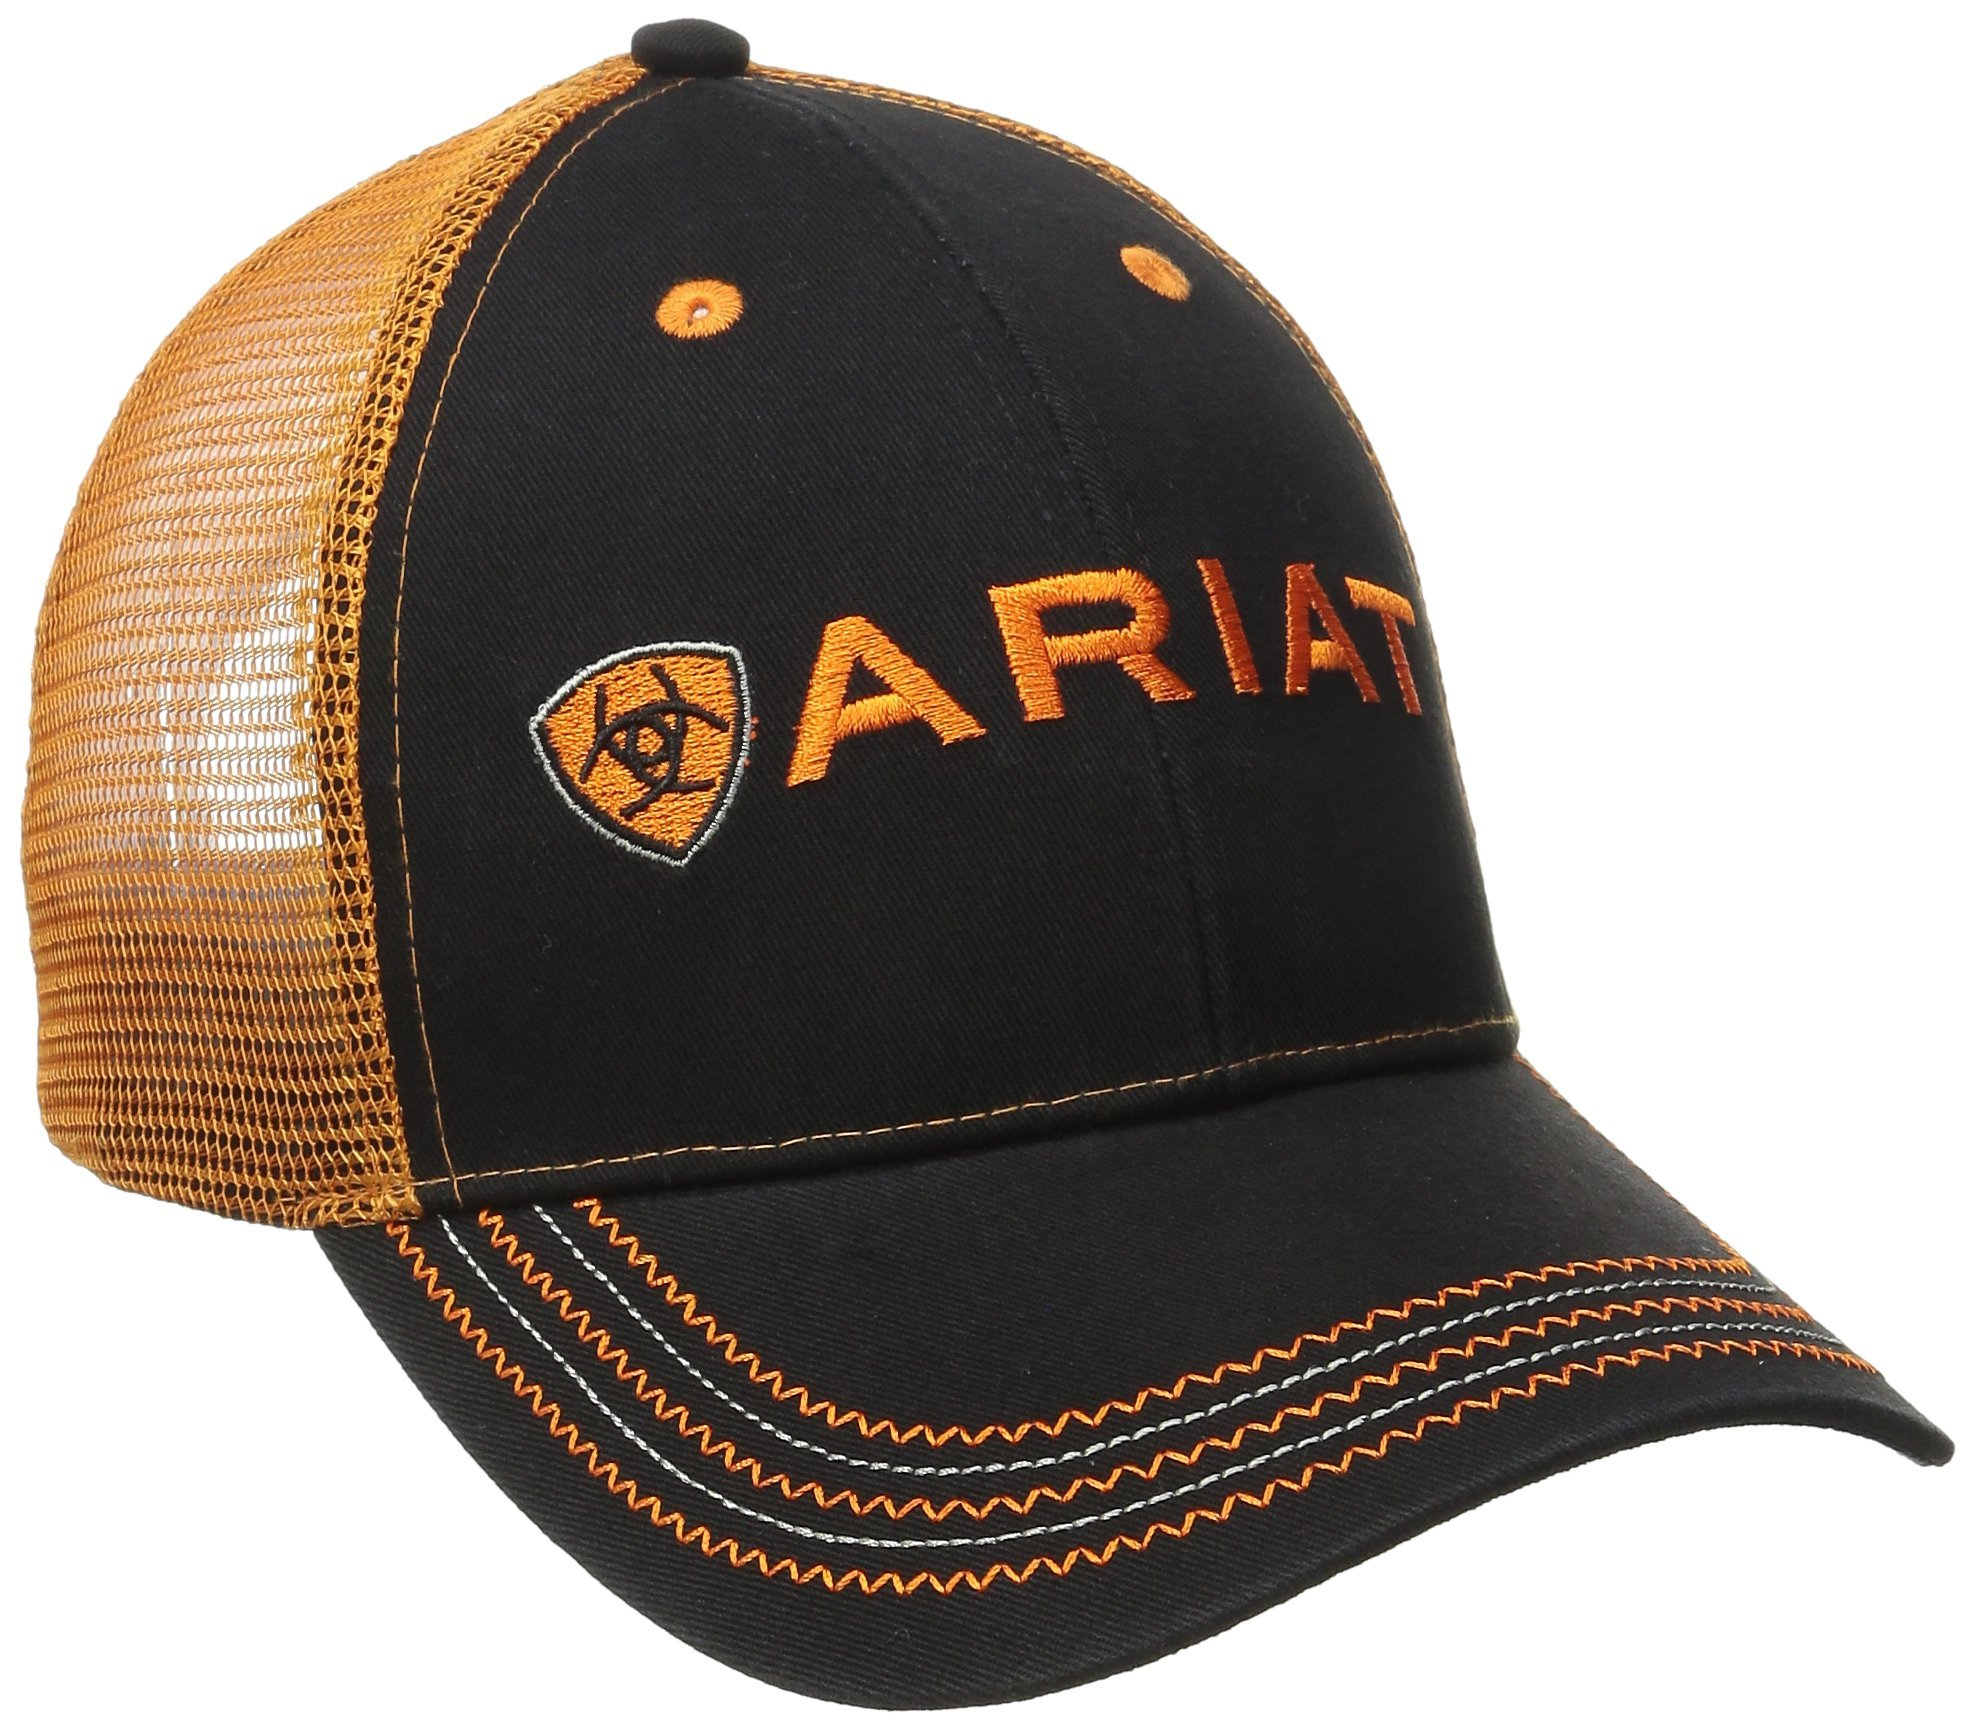 Ariat Men's Orange Mesh Hat, Orange, One Size